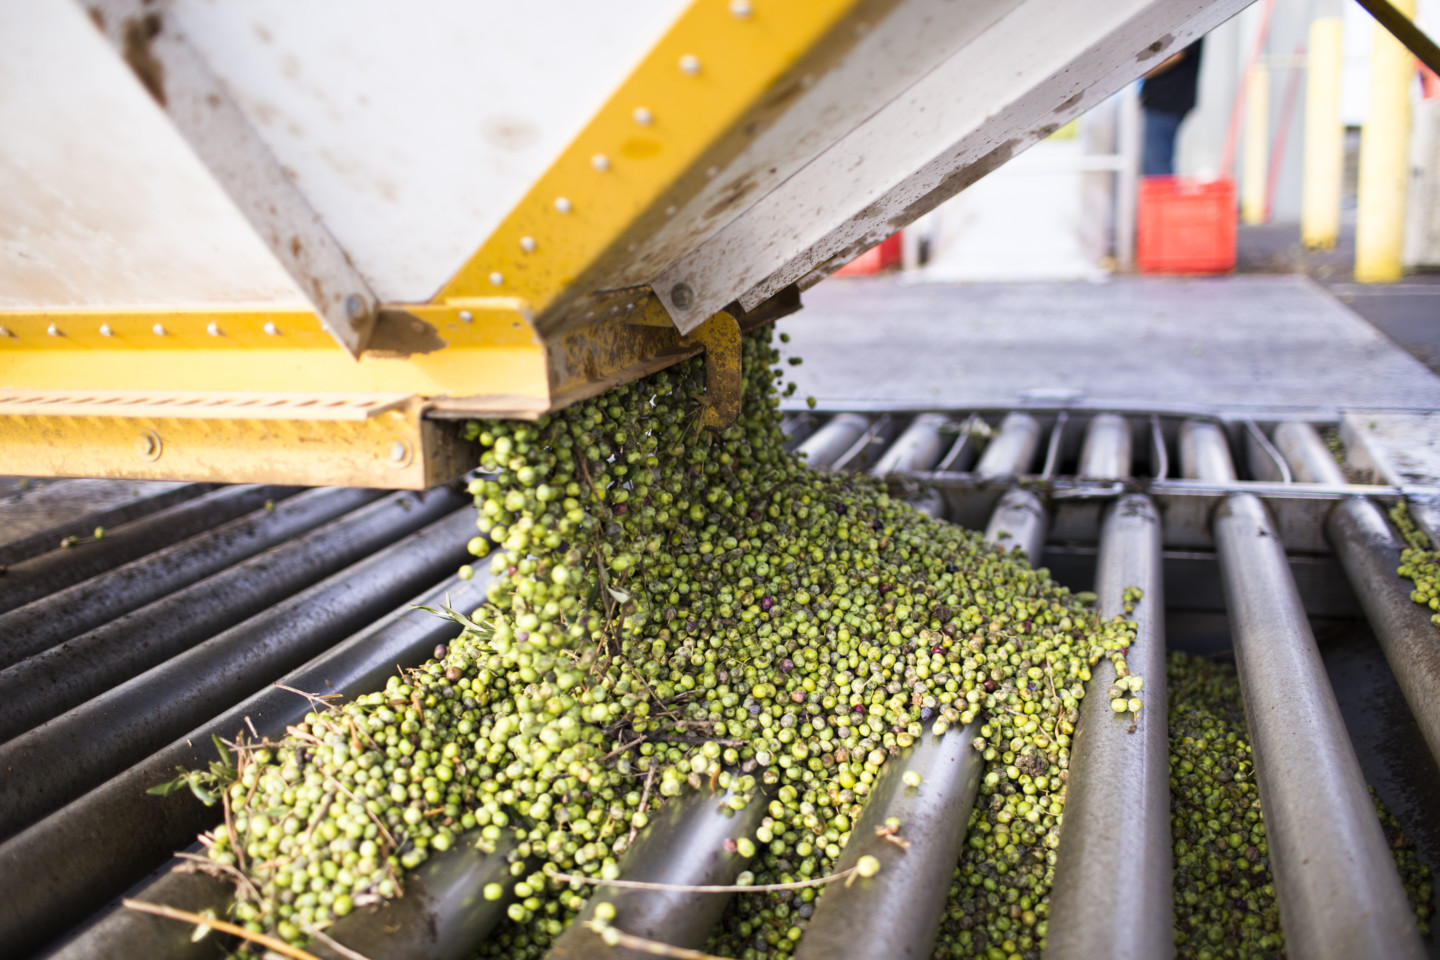 Olives being dumped into storage to become extra virgin olive oil.